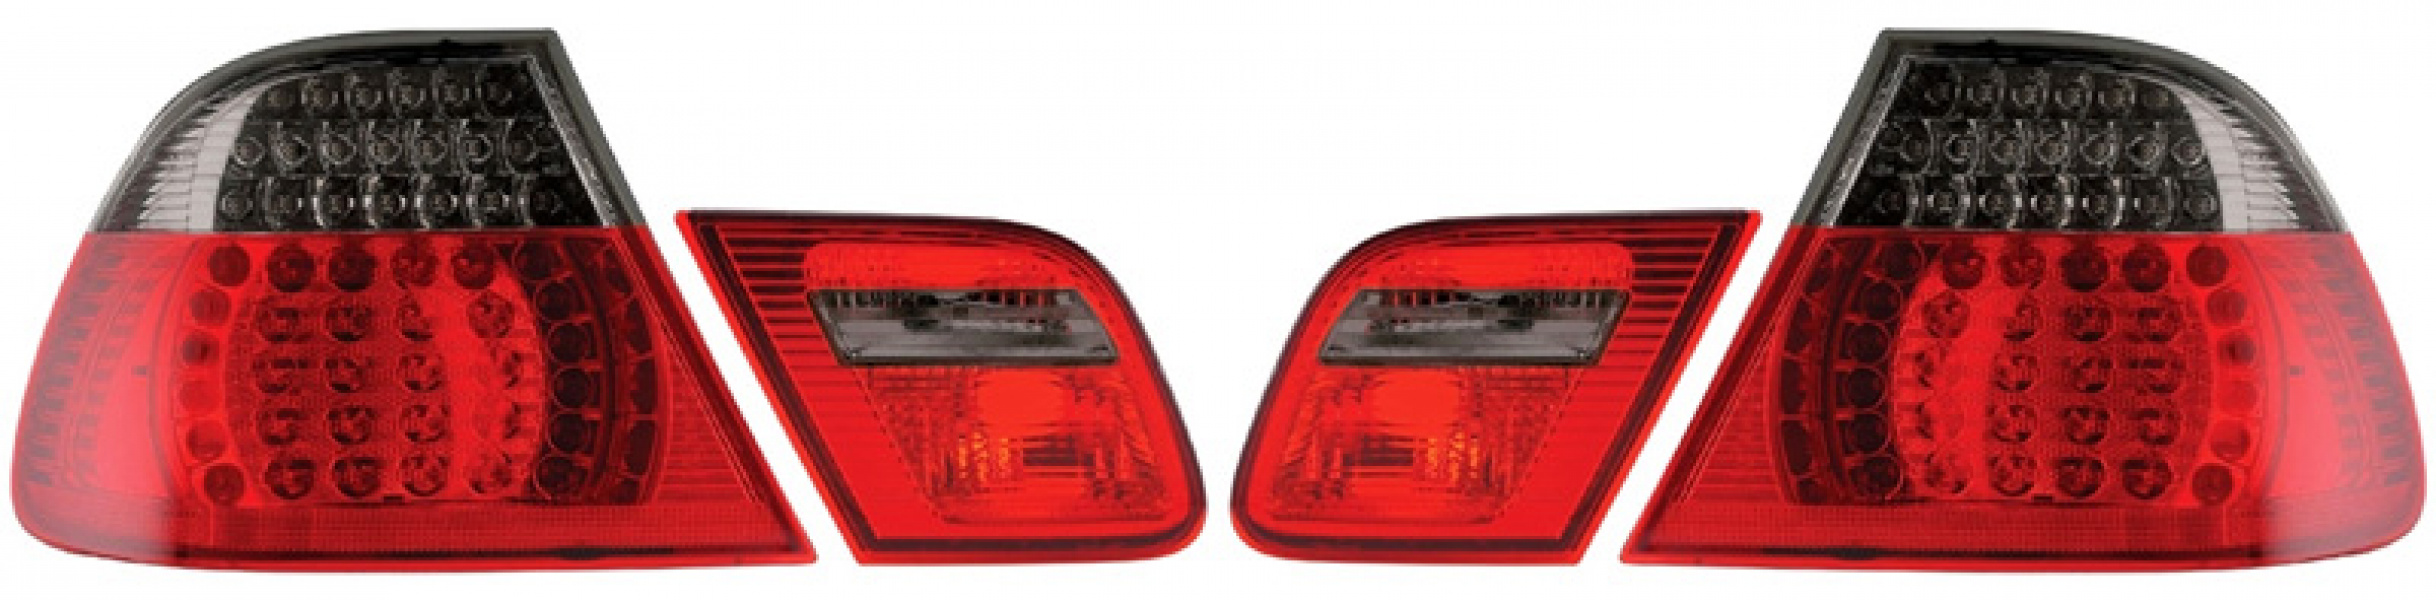 Baklampor LED Smoke/Röd BMW 3-Serien E46 Coupe 1999-2003